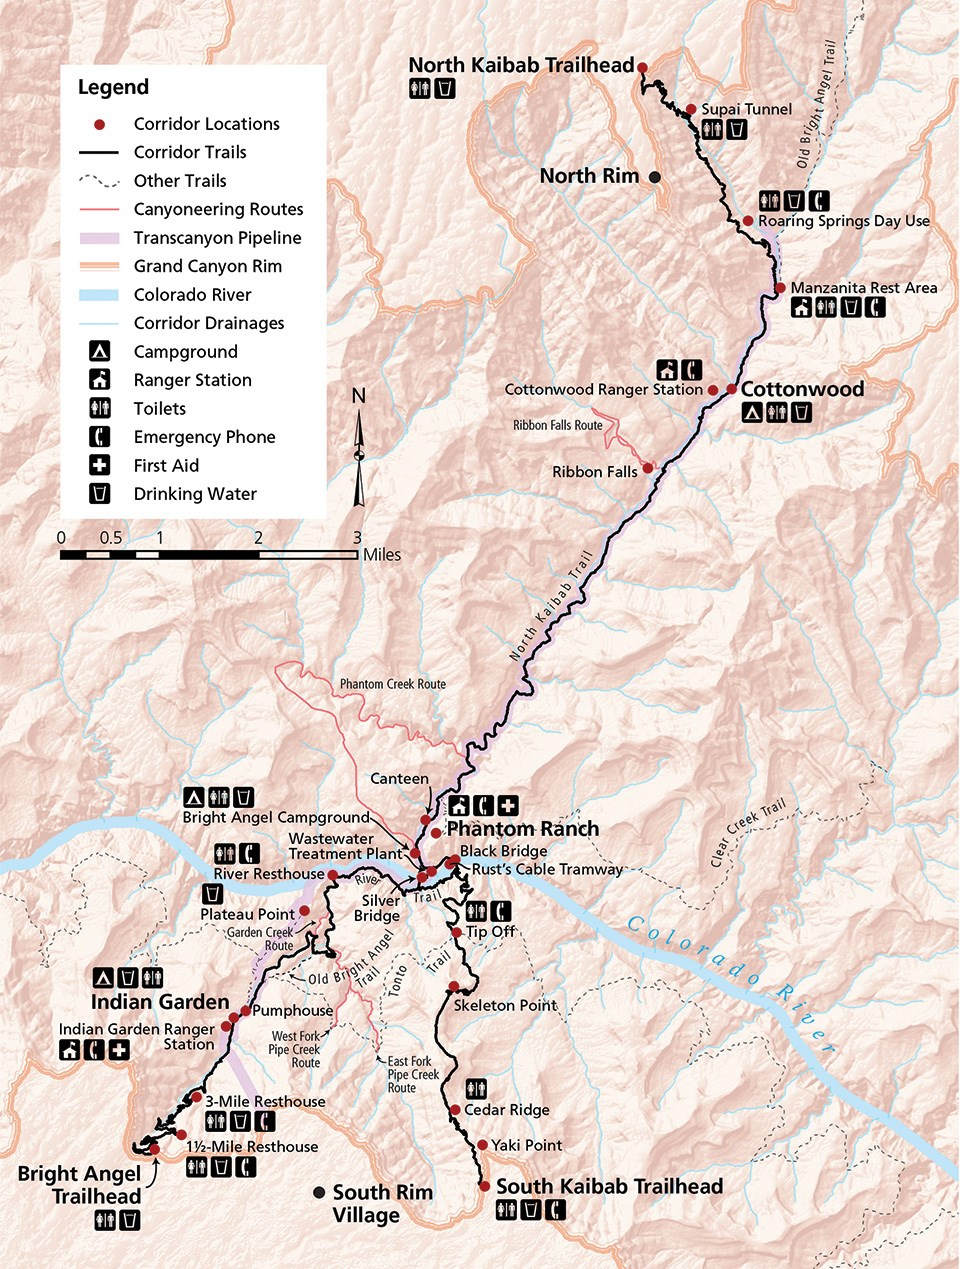 Grand Canyon S Corridor Trail System Linking The Past Present And